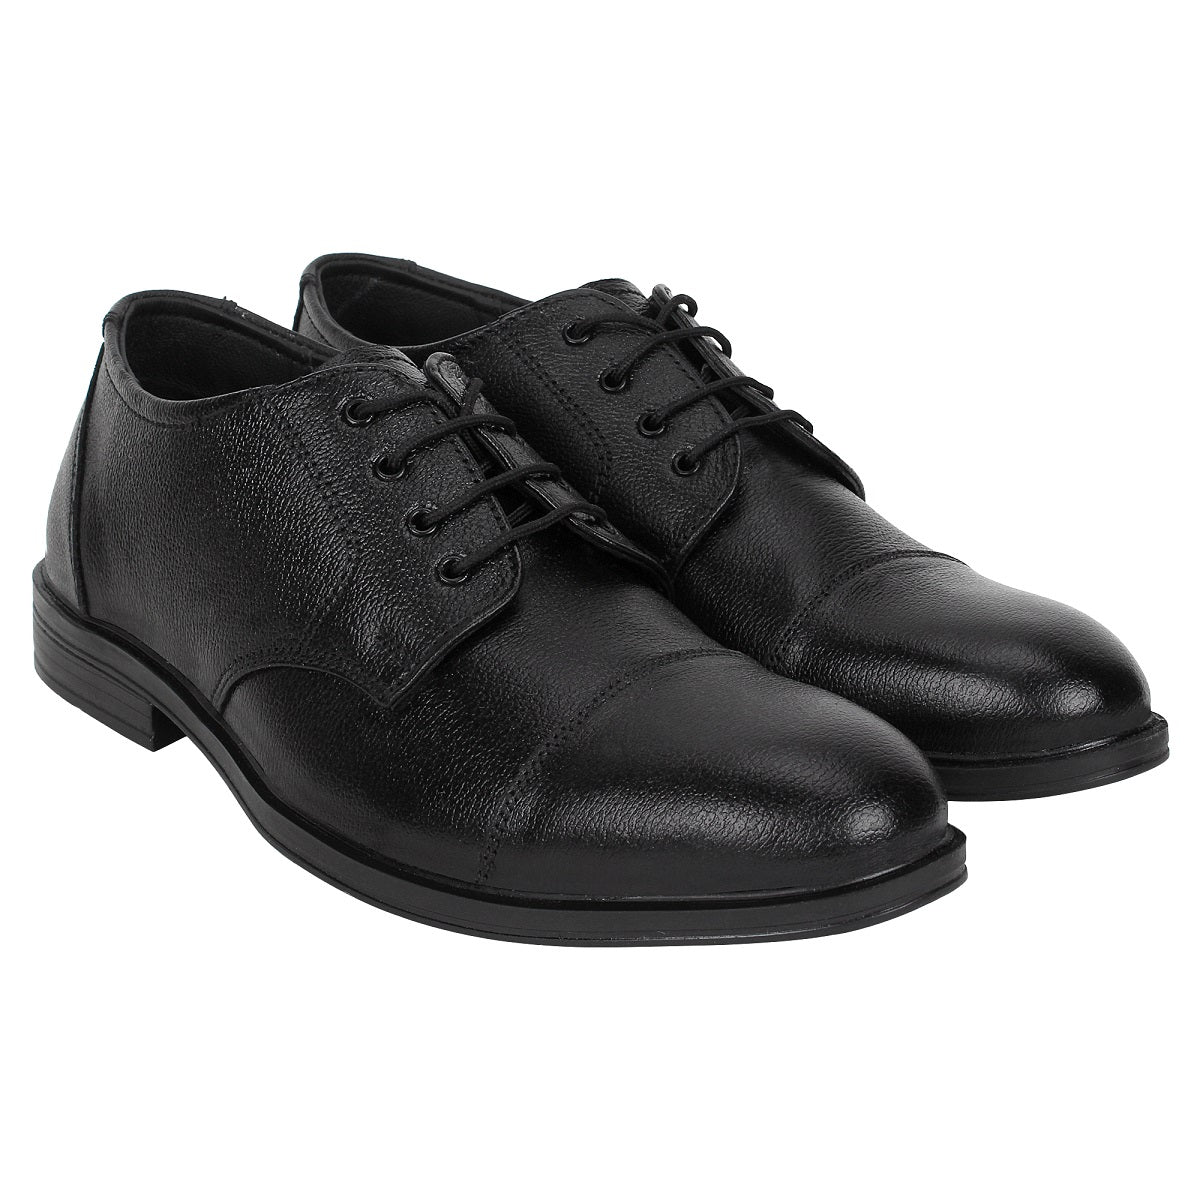 SeeandWear Leather Toe Cap Formal Shoes